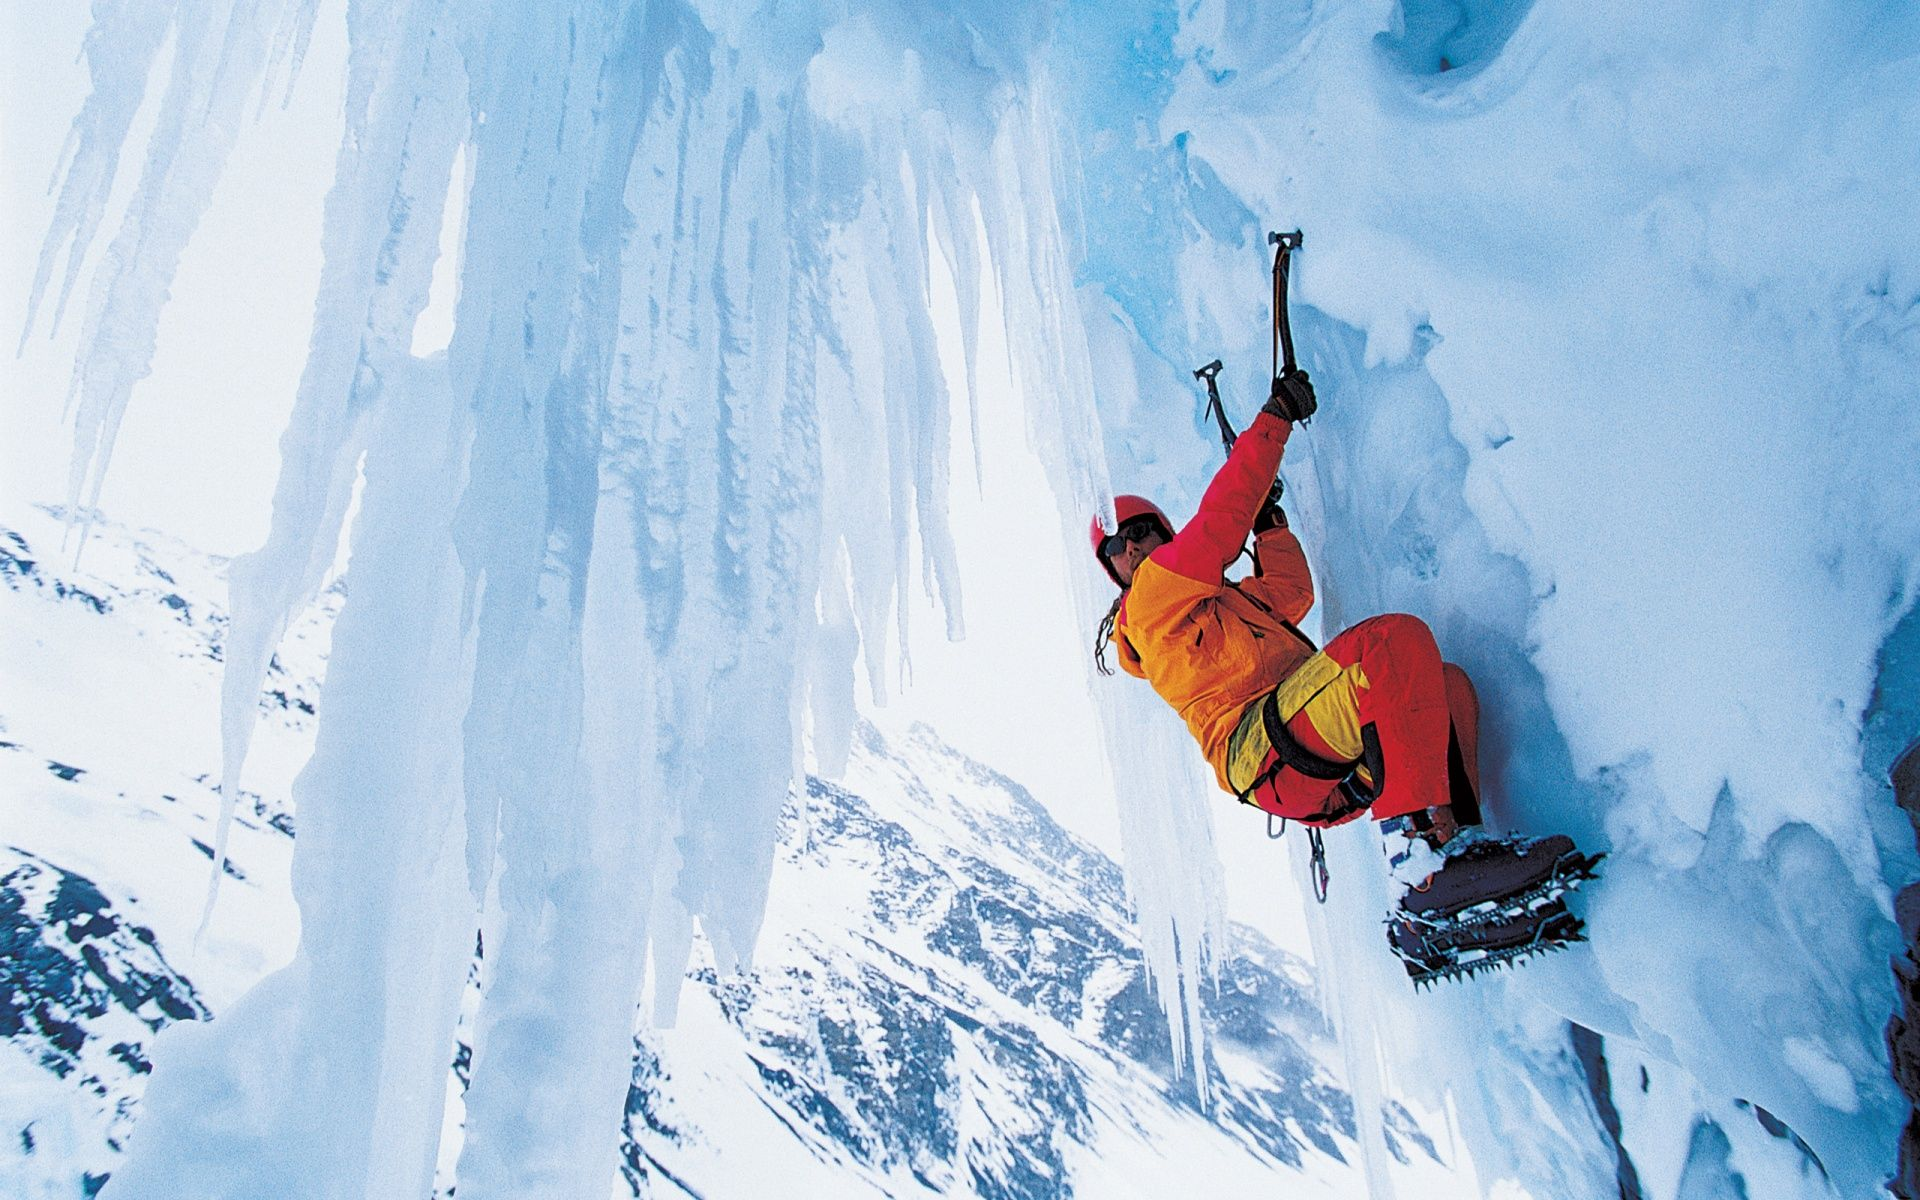 Ice Climbing Wallpaper Find Best Latest Ice Climbing Wallpaper For